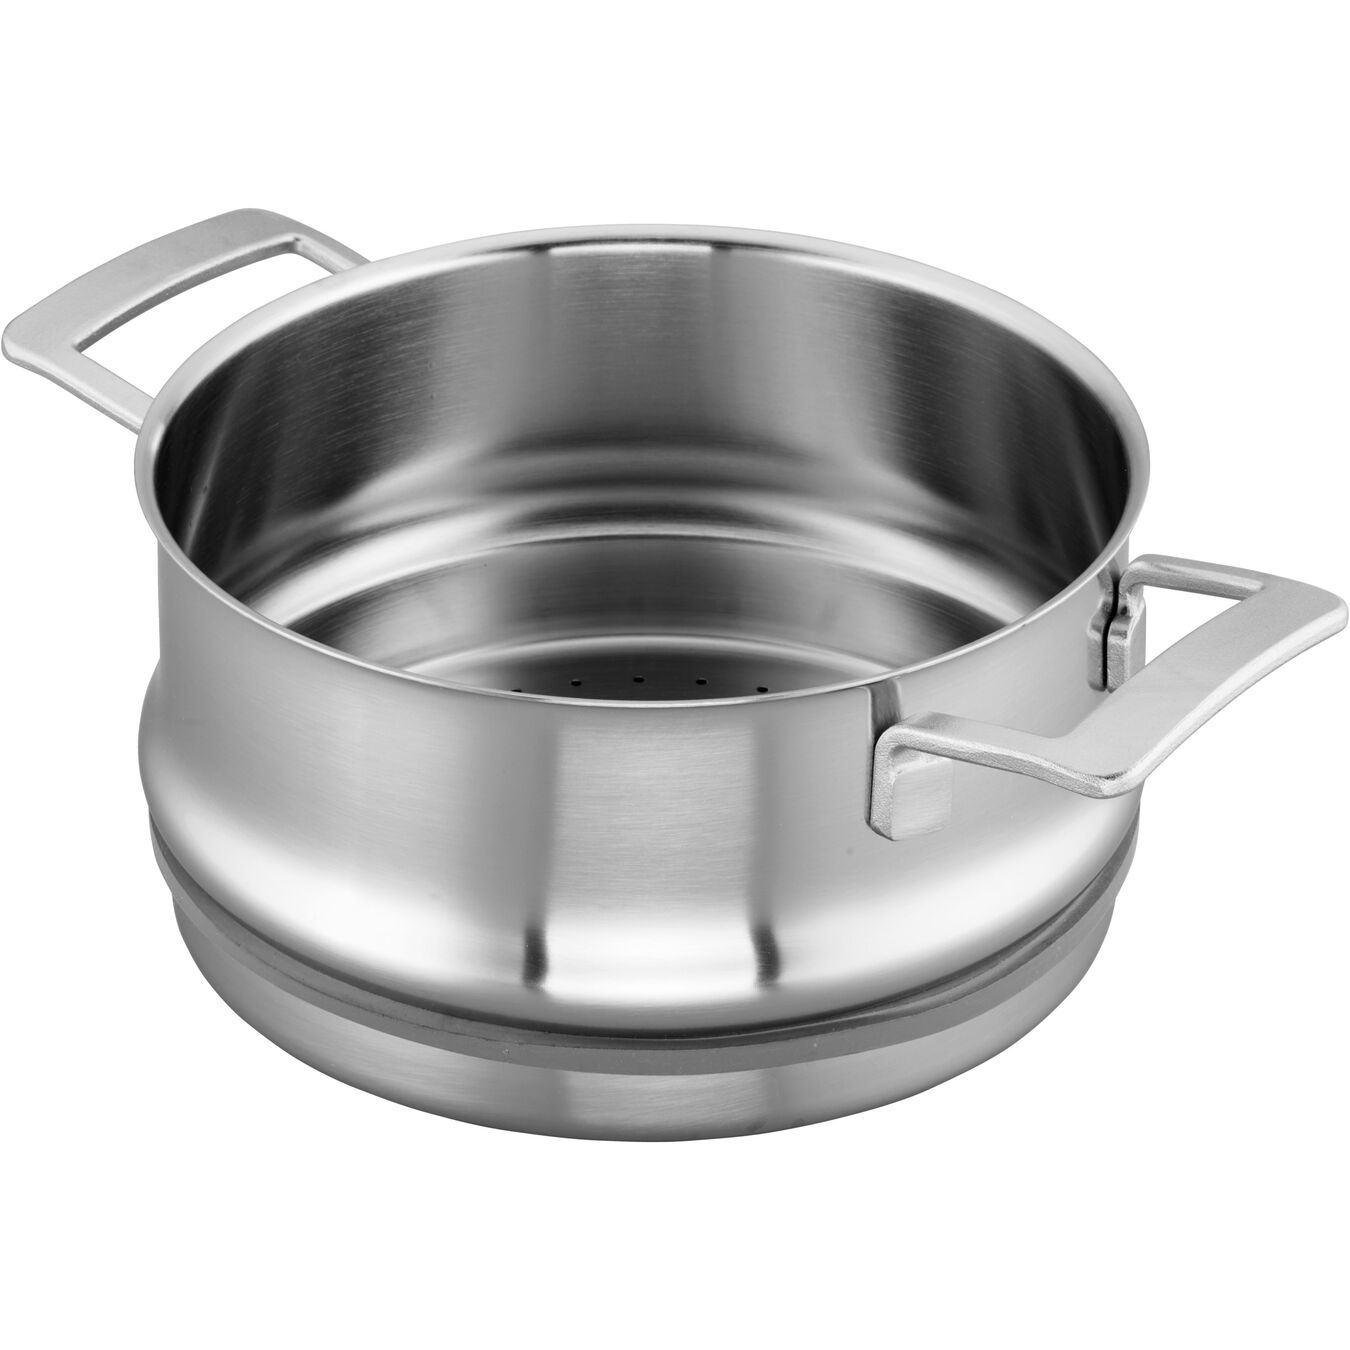 5.5-qt Stainless Steel Steamer Insert (Fits 8-qt Stock Pot & 5.5-qt Dutch Oven),,large 1